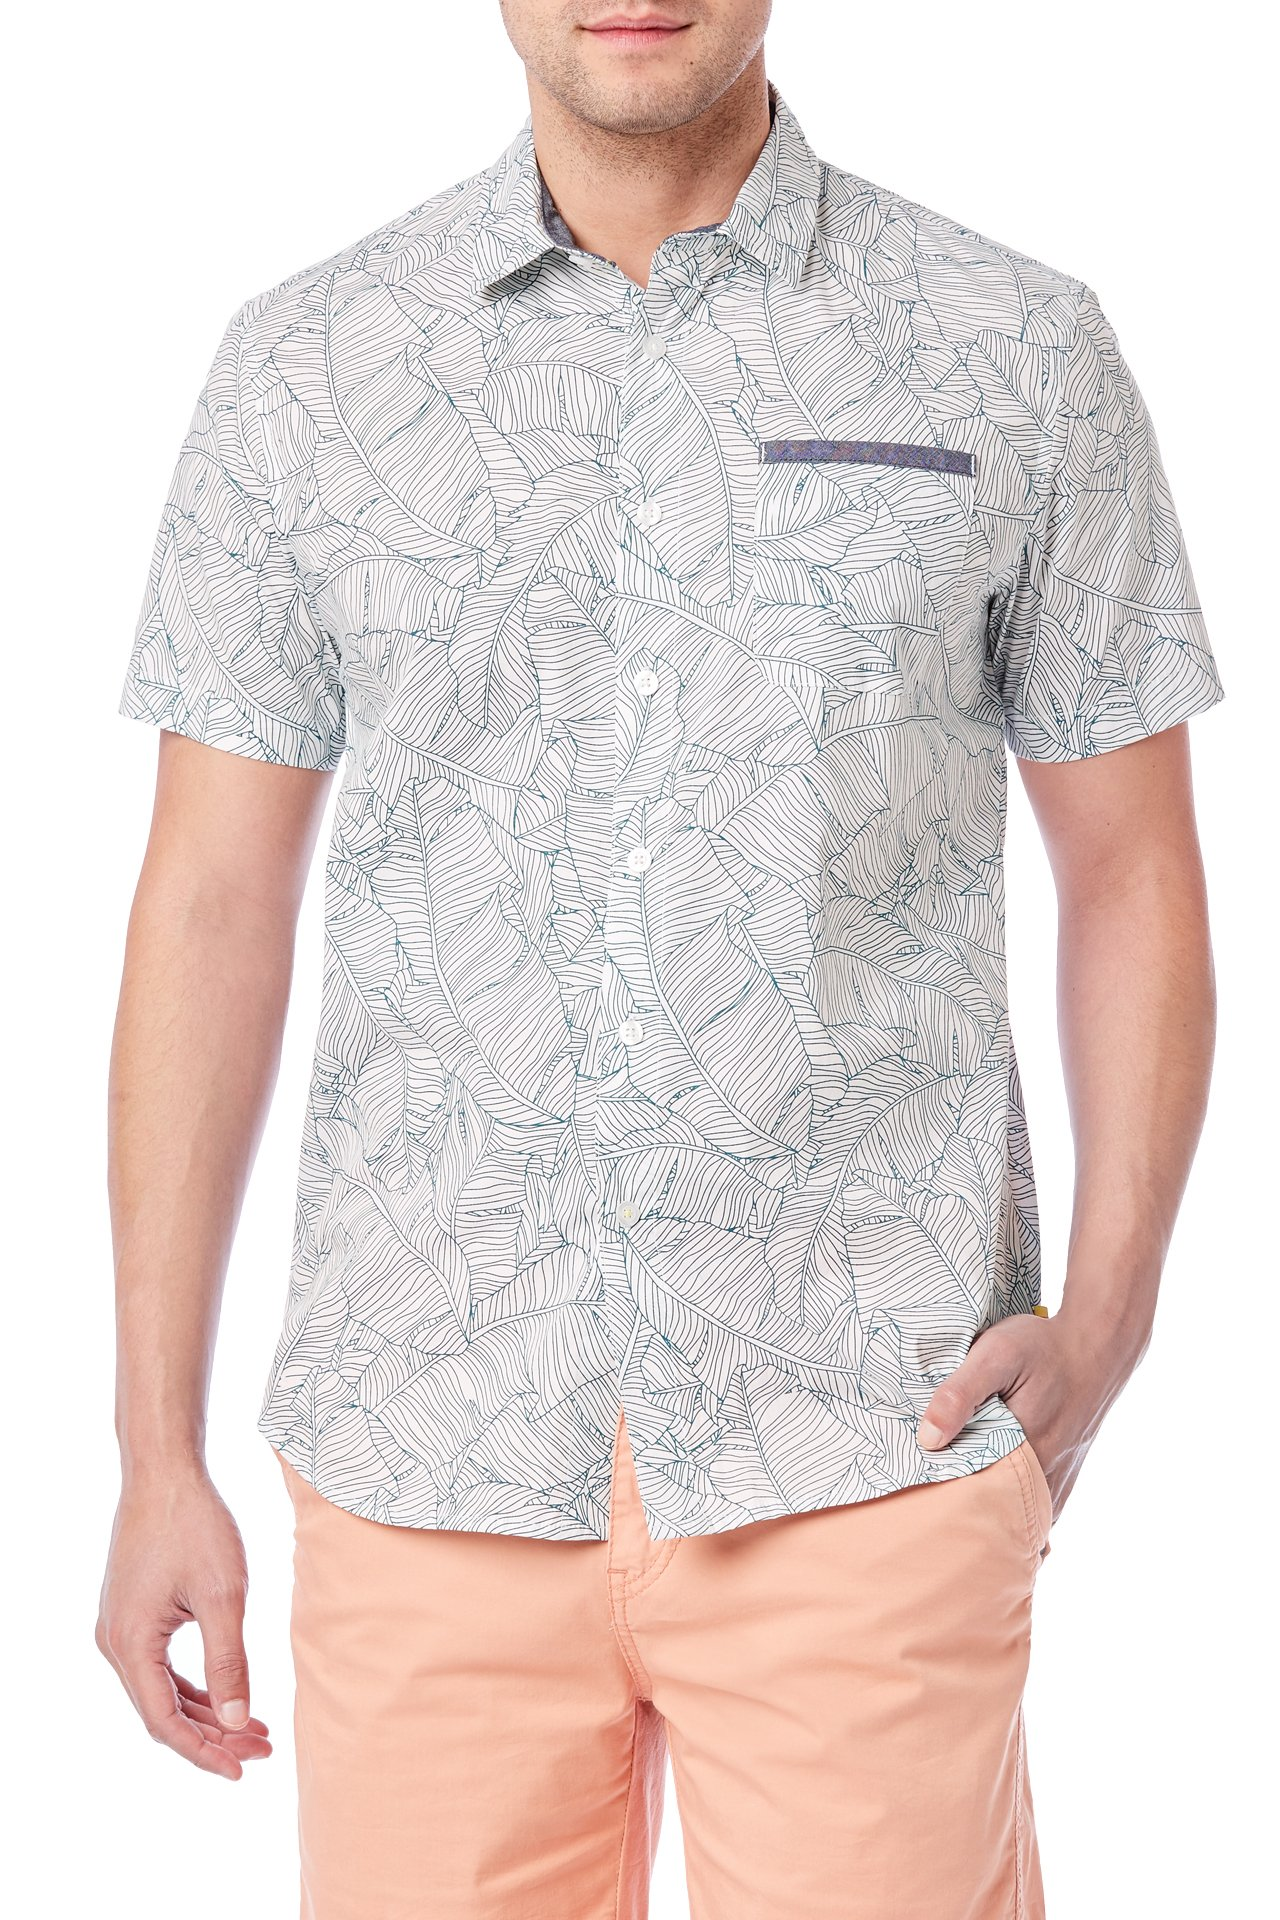 UNIONBAY Men's Classic Short Sleeve Poplin Button-up Woven Shirt, New White, Small by UNIONBAY